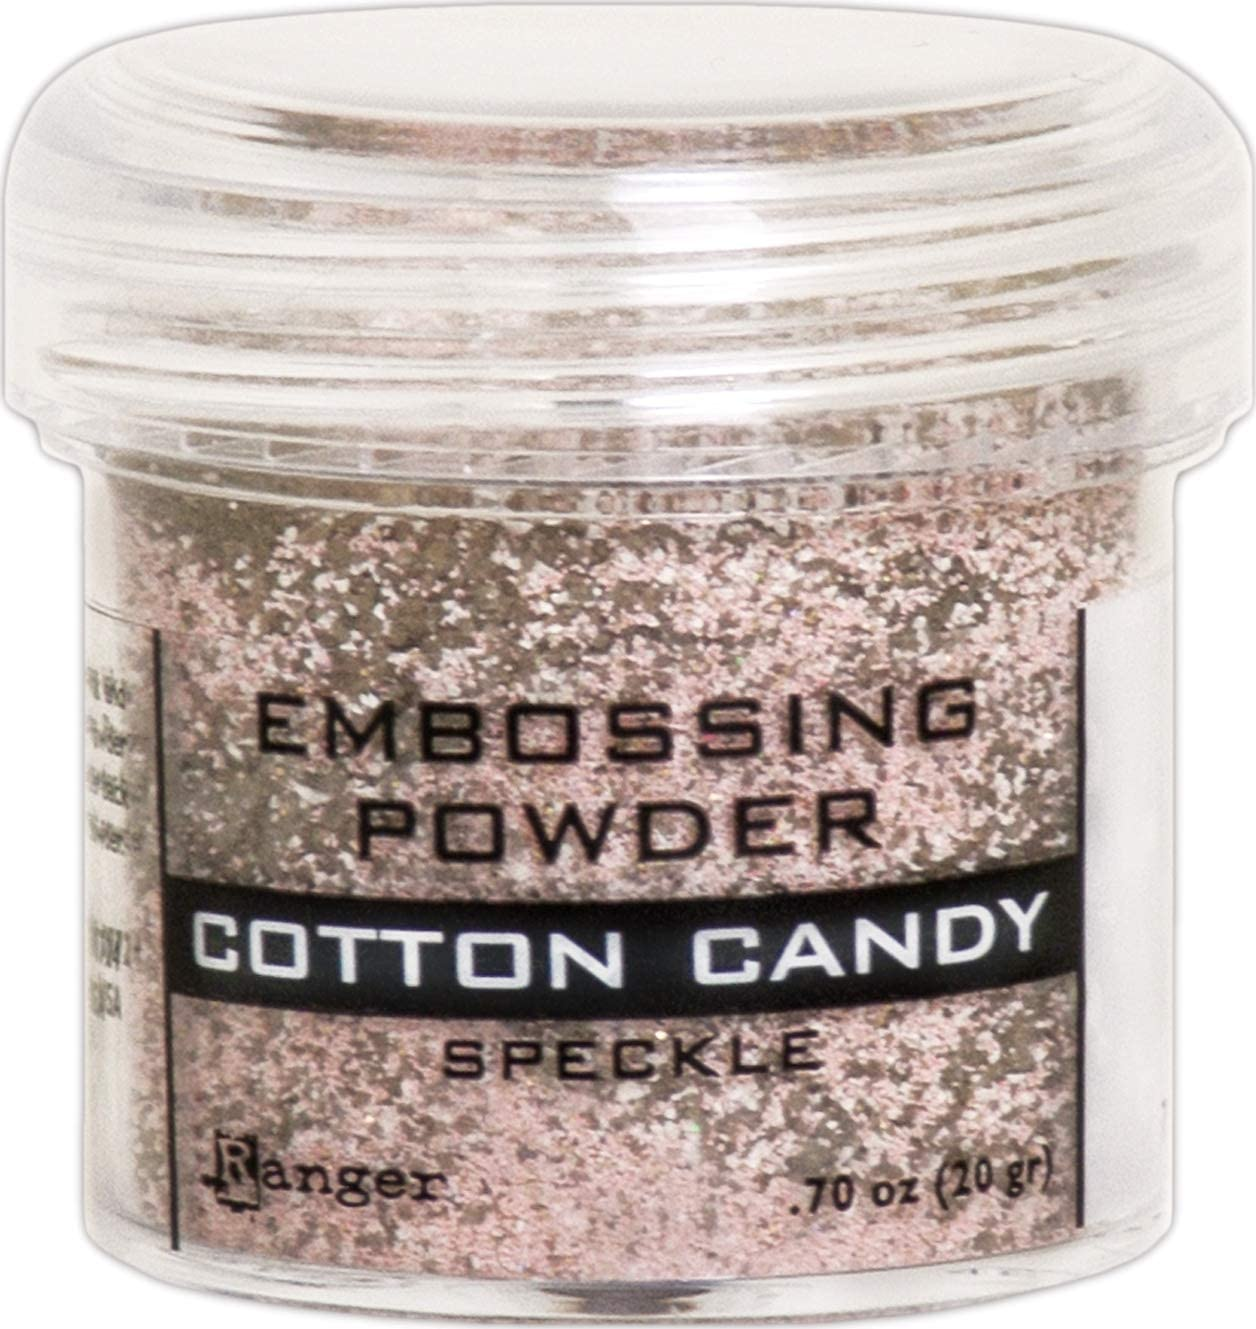 RANGER INDUSTRIES EMBOSSING POWDER COTTN CNDY, Cotton Candy